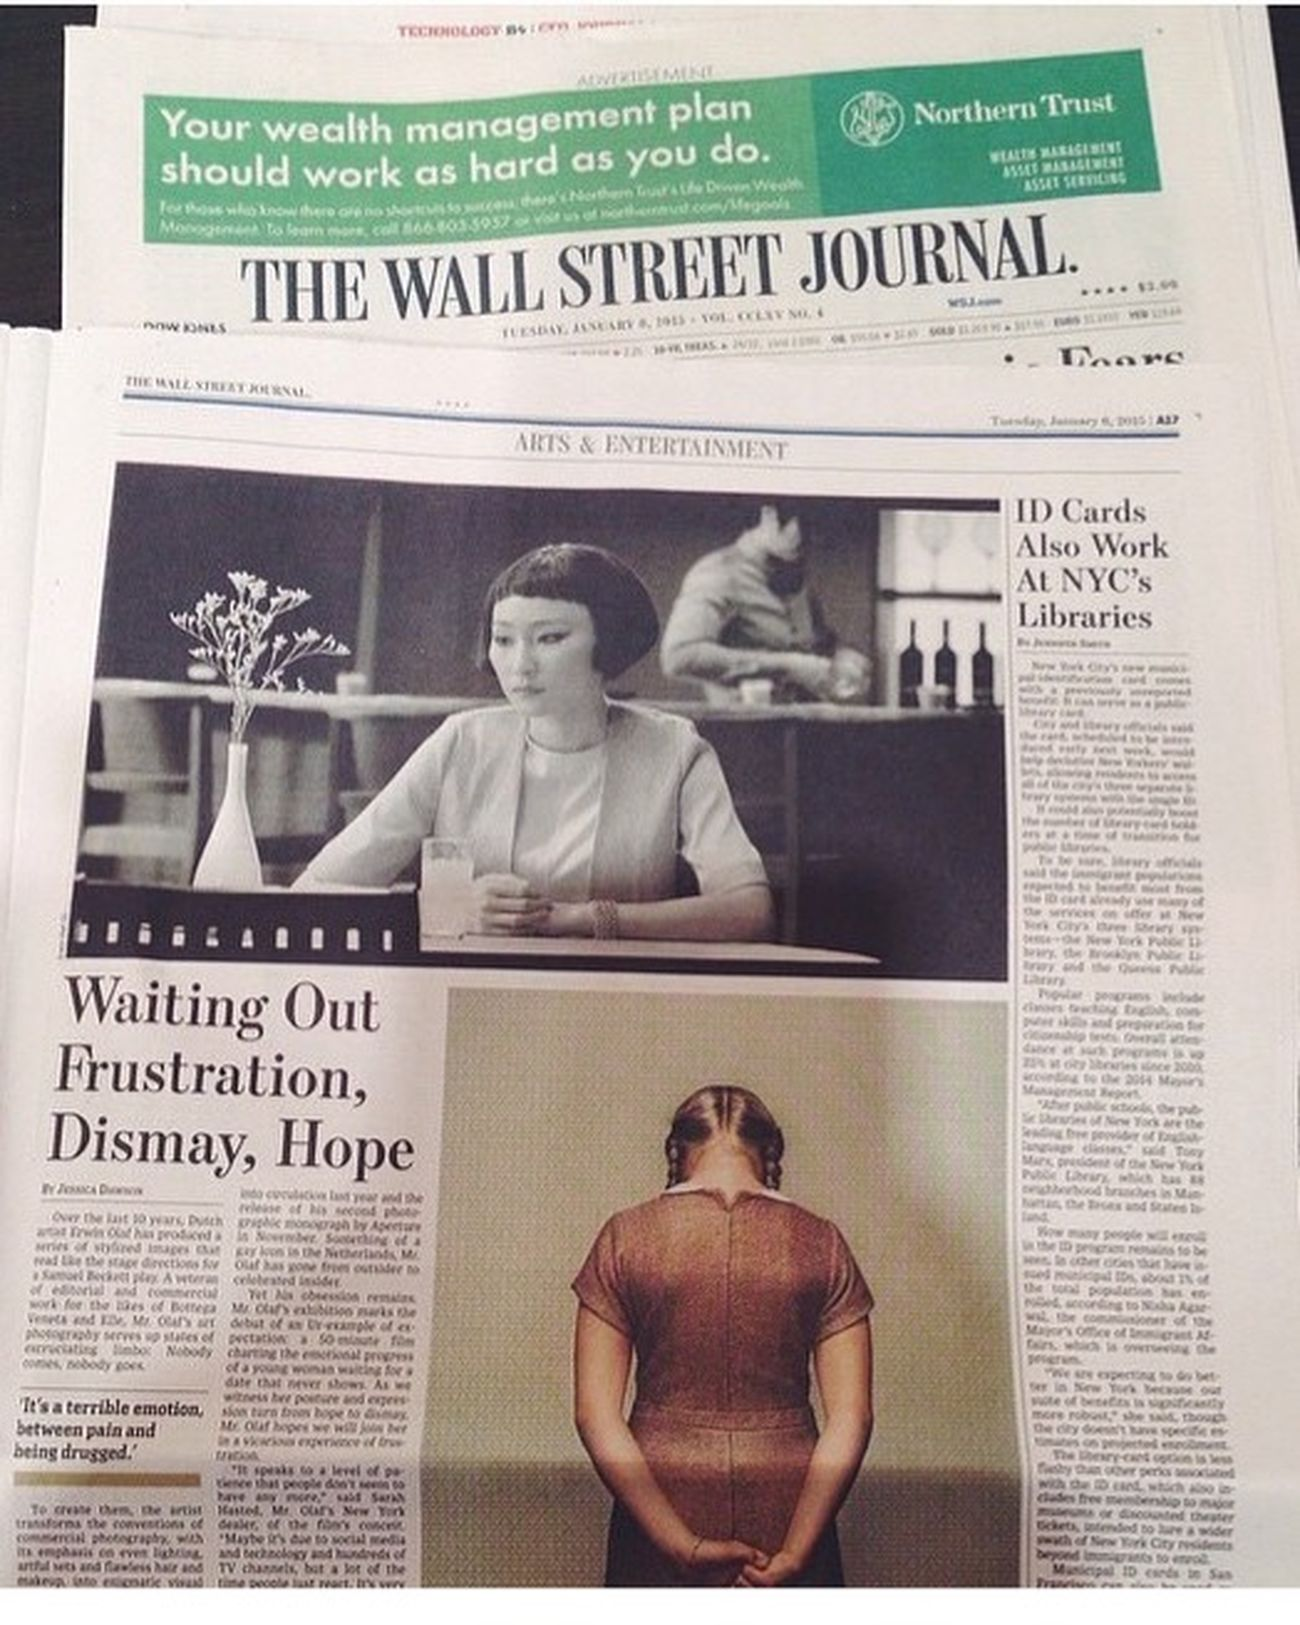 Studio Erwin Olaf The Wallstreet Journal